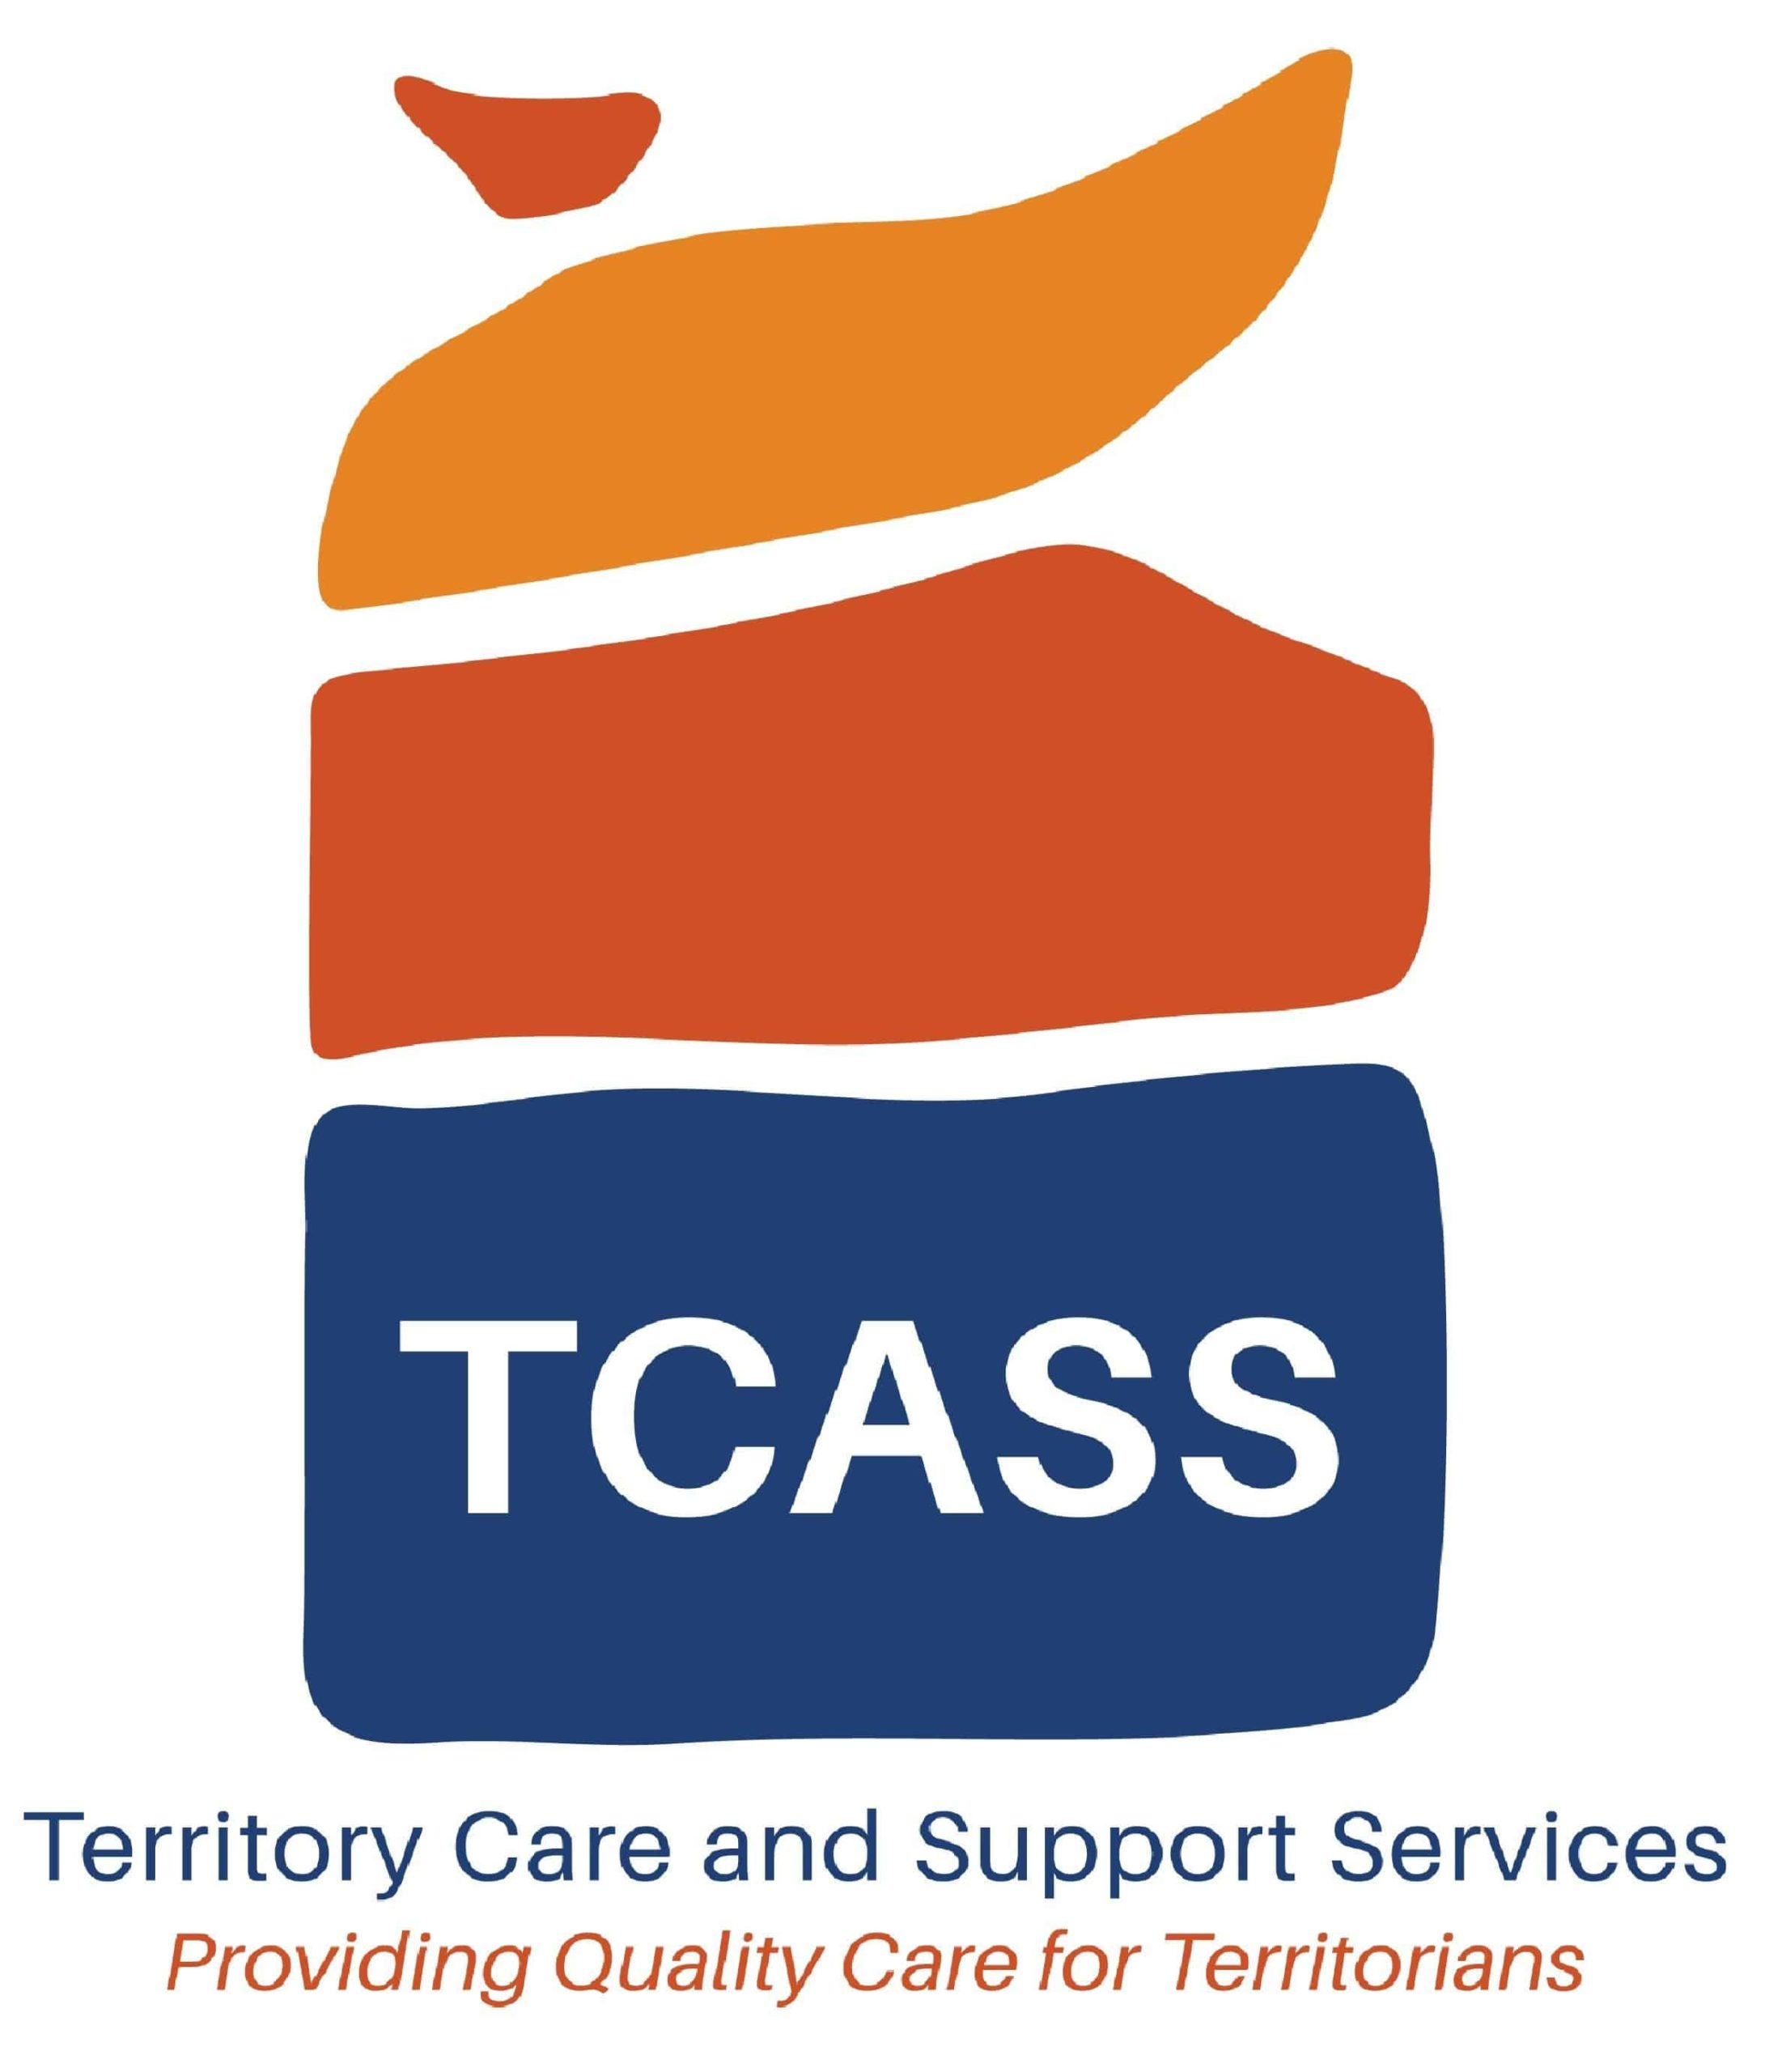 Territory Care & Support Services (TCASS) Logo